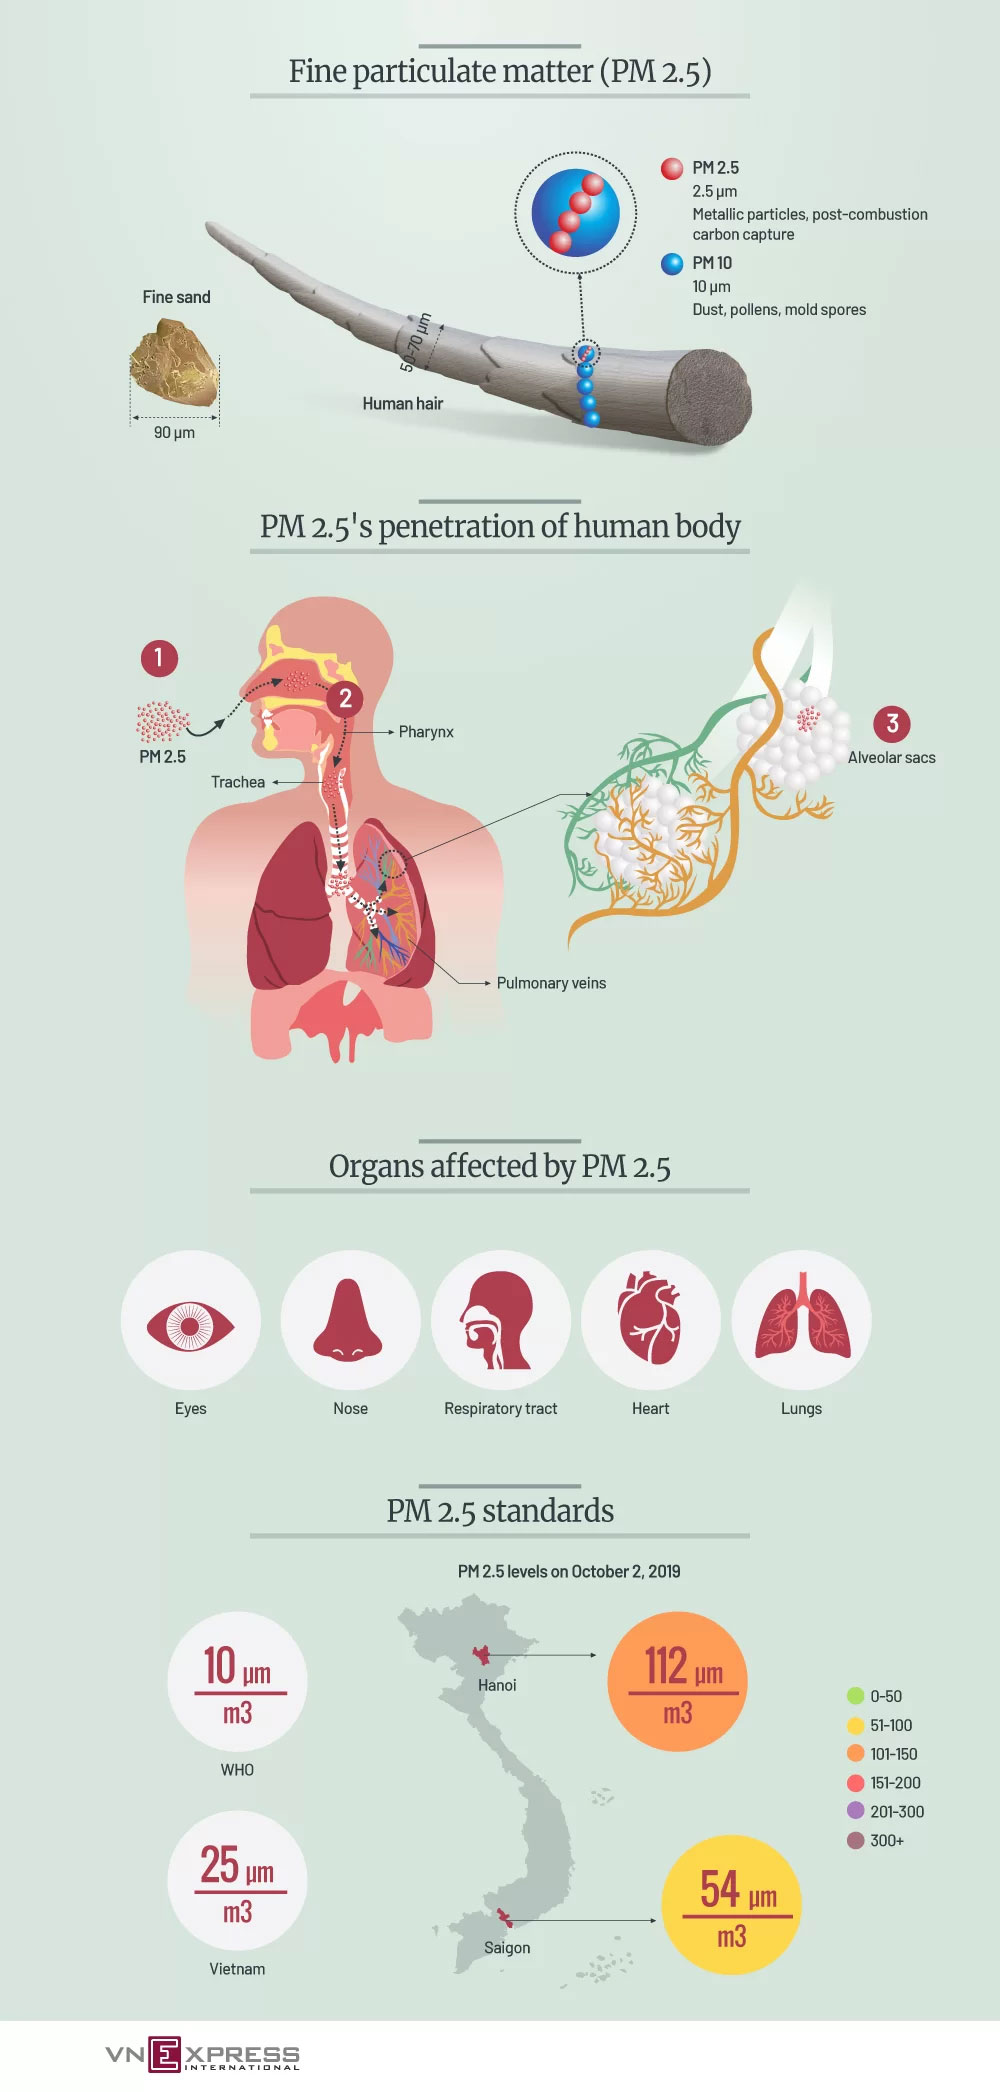 air pollution particles, human body, host of disorders, fine article matter